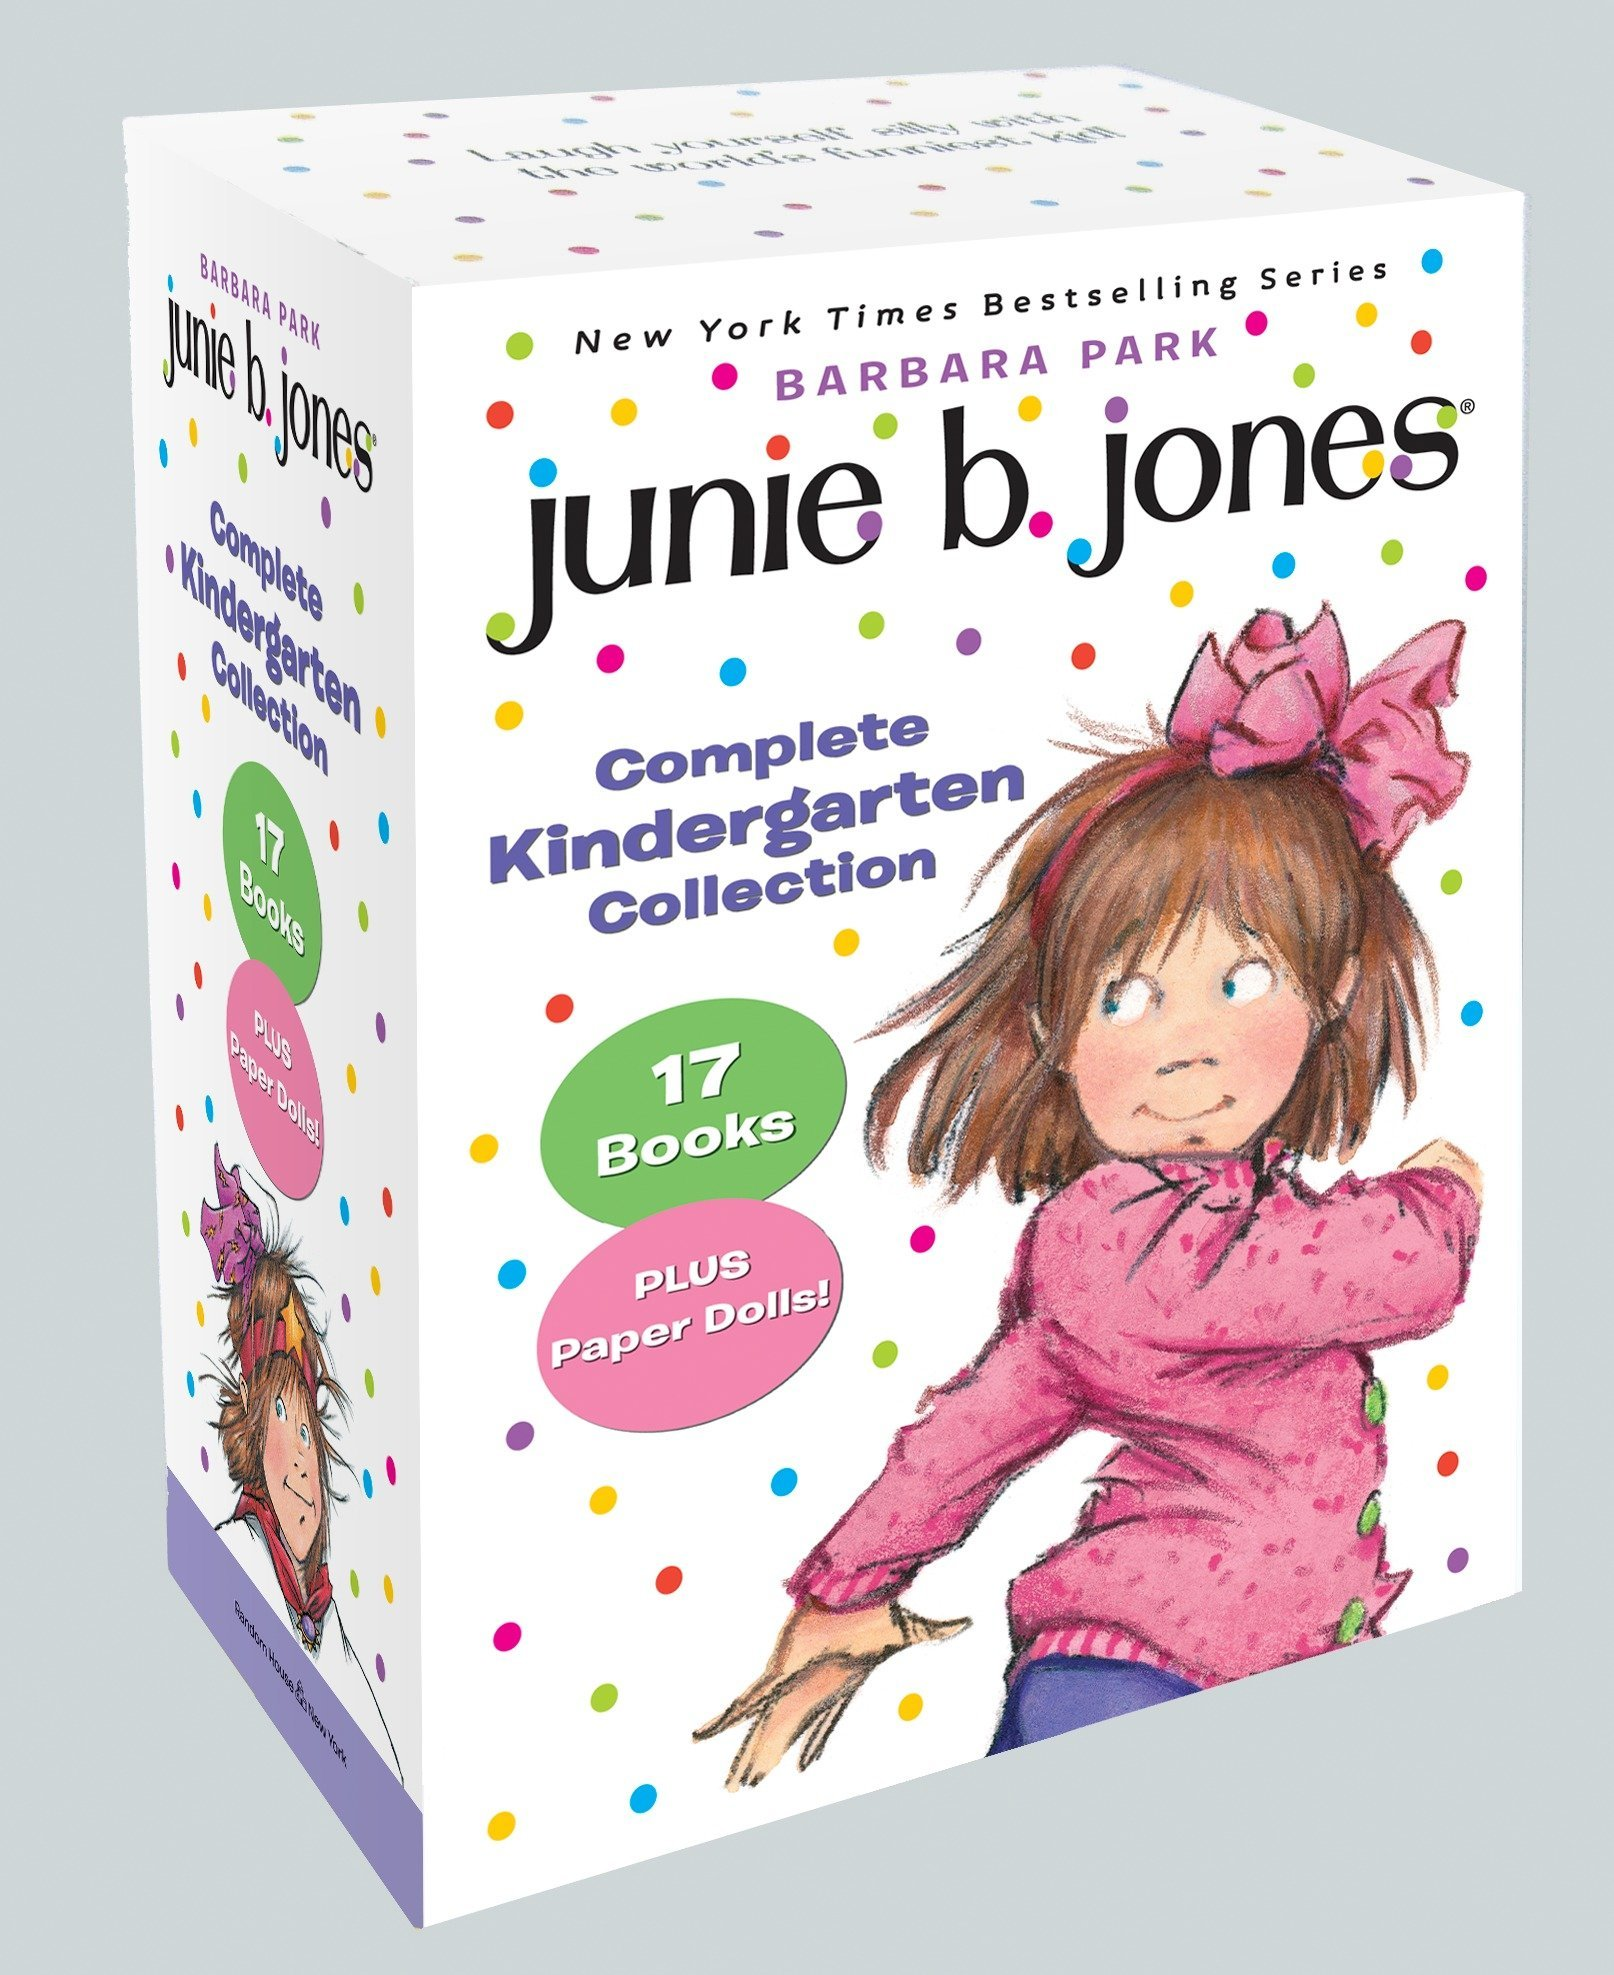 Junie B. Jones Complete Kindergarten Collection: Books 1-17 with paper dolls in boxed set by RHBYR (Image #1)